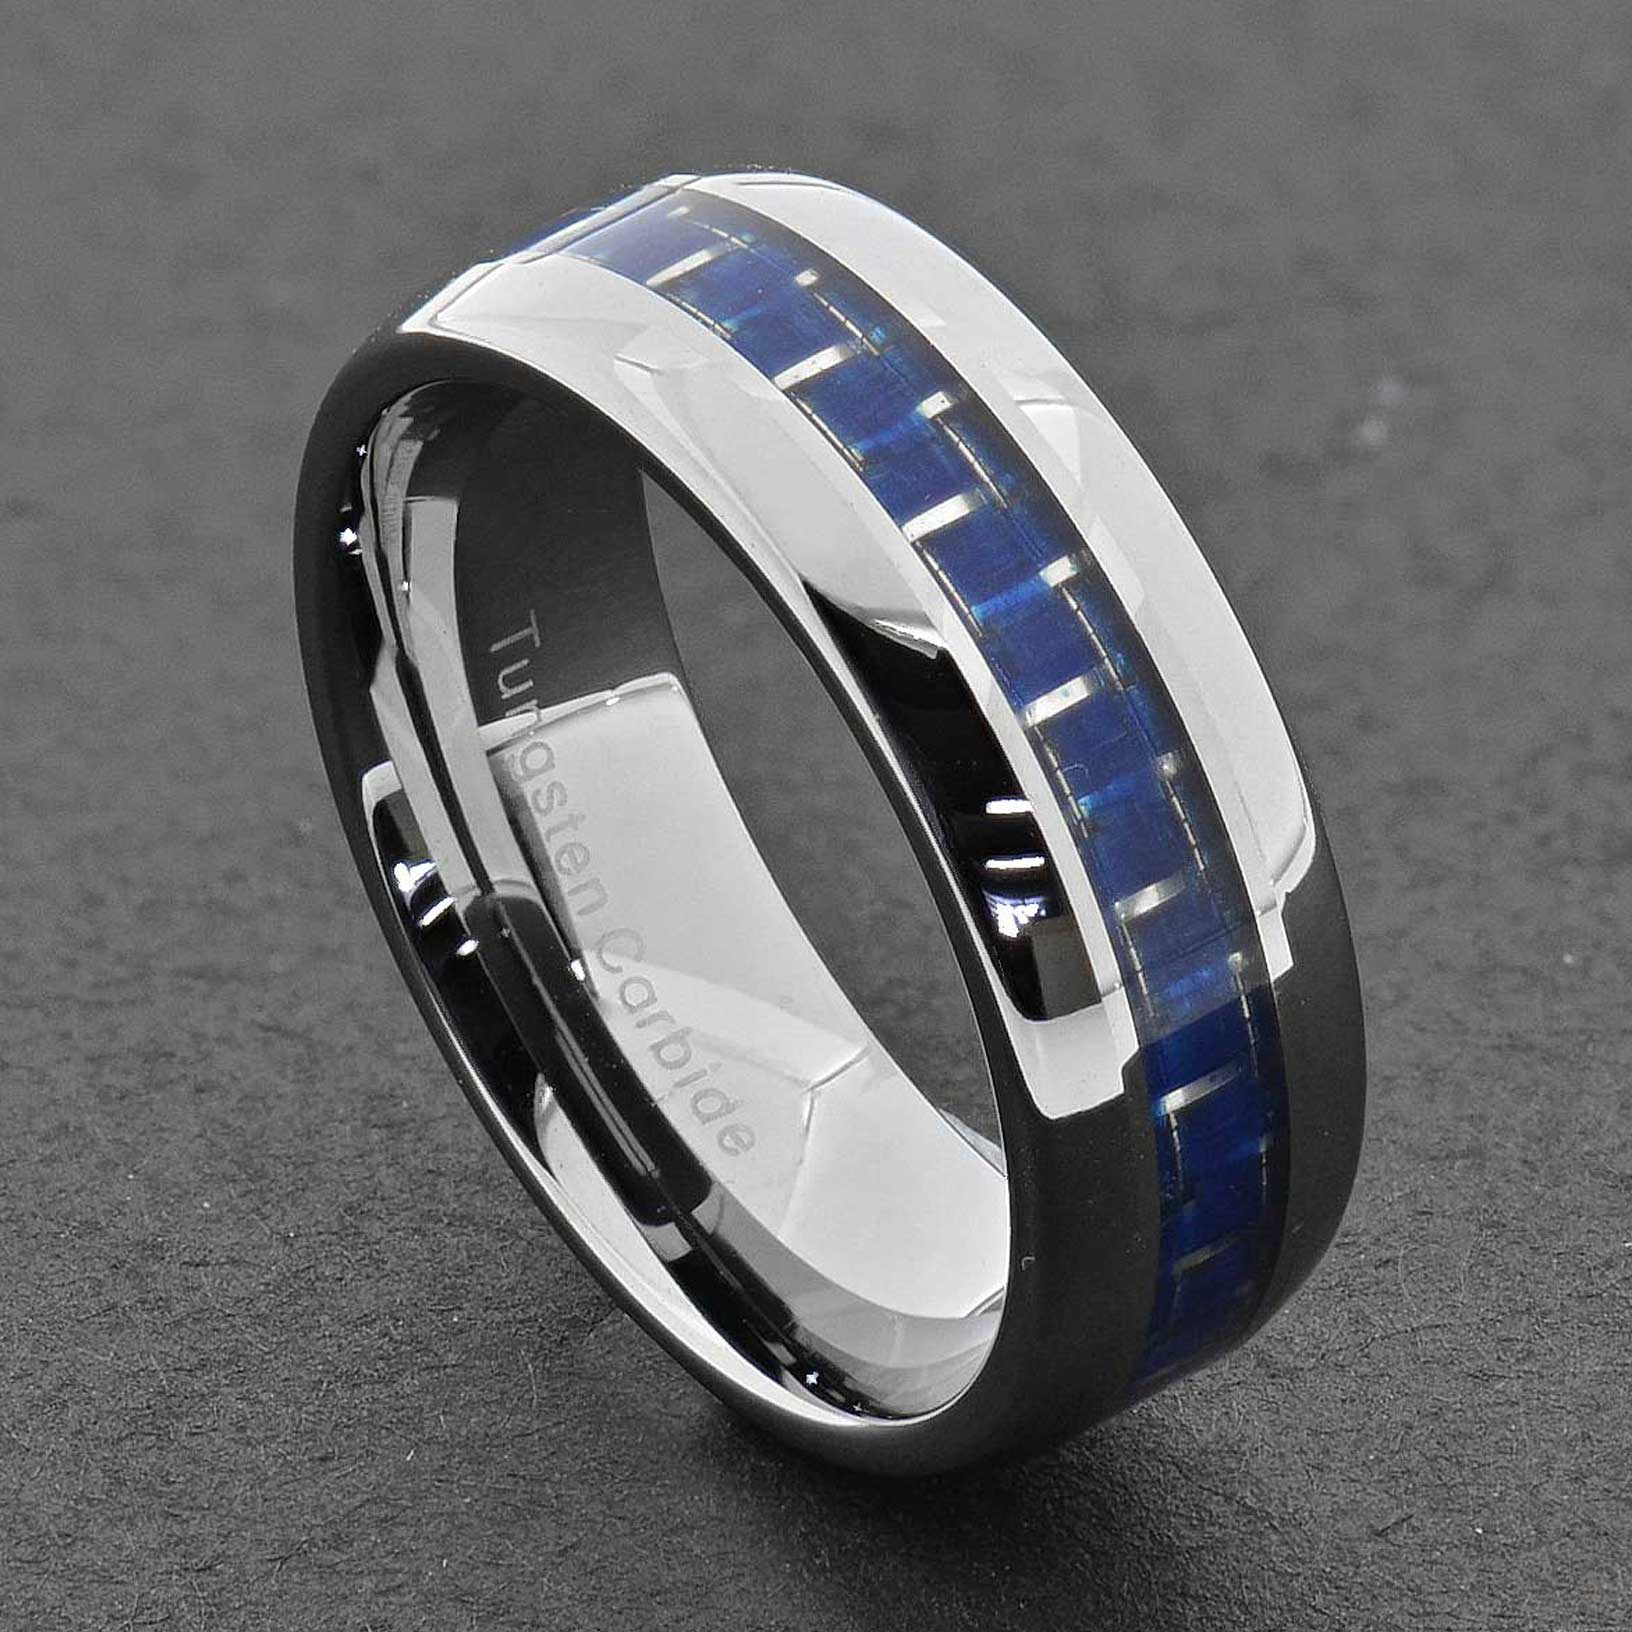 tungsten carbide ring comfort fit wedding band men silver blue black cabon fiber ebay. Black Bedroom Furniture Sets. Home Design Ideas